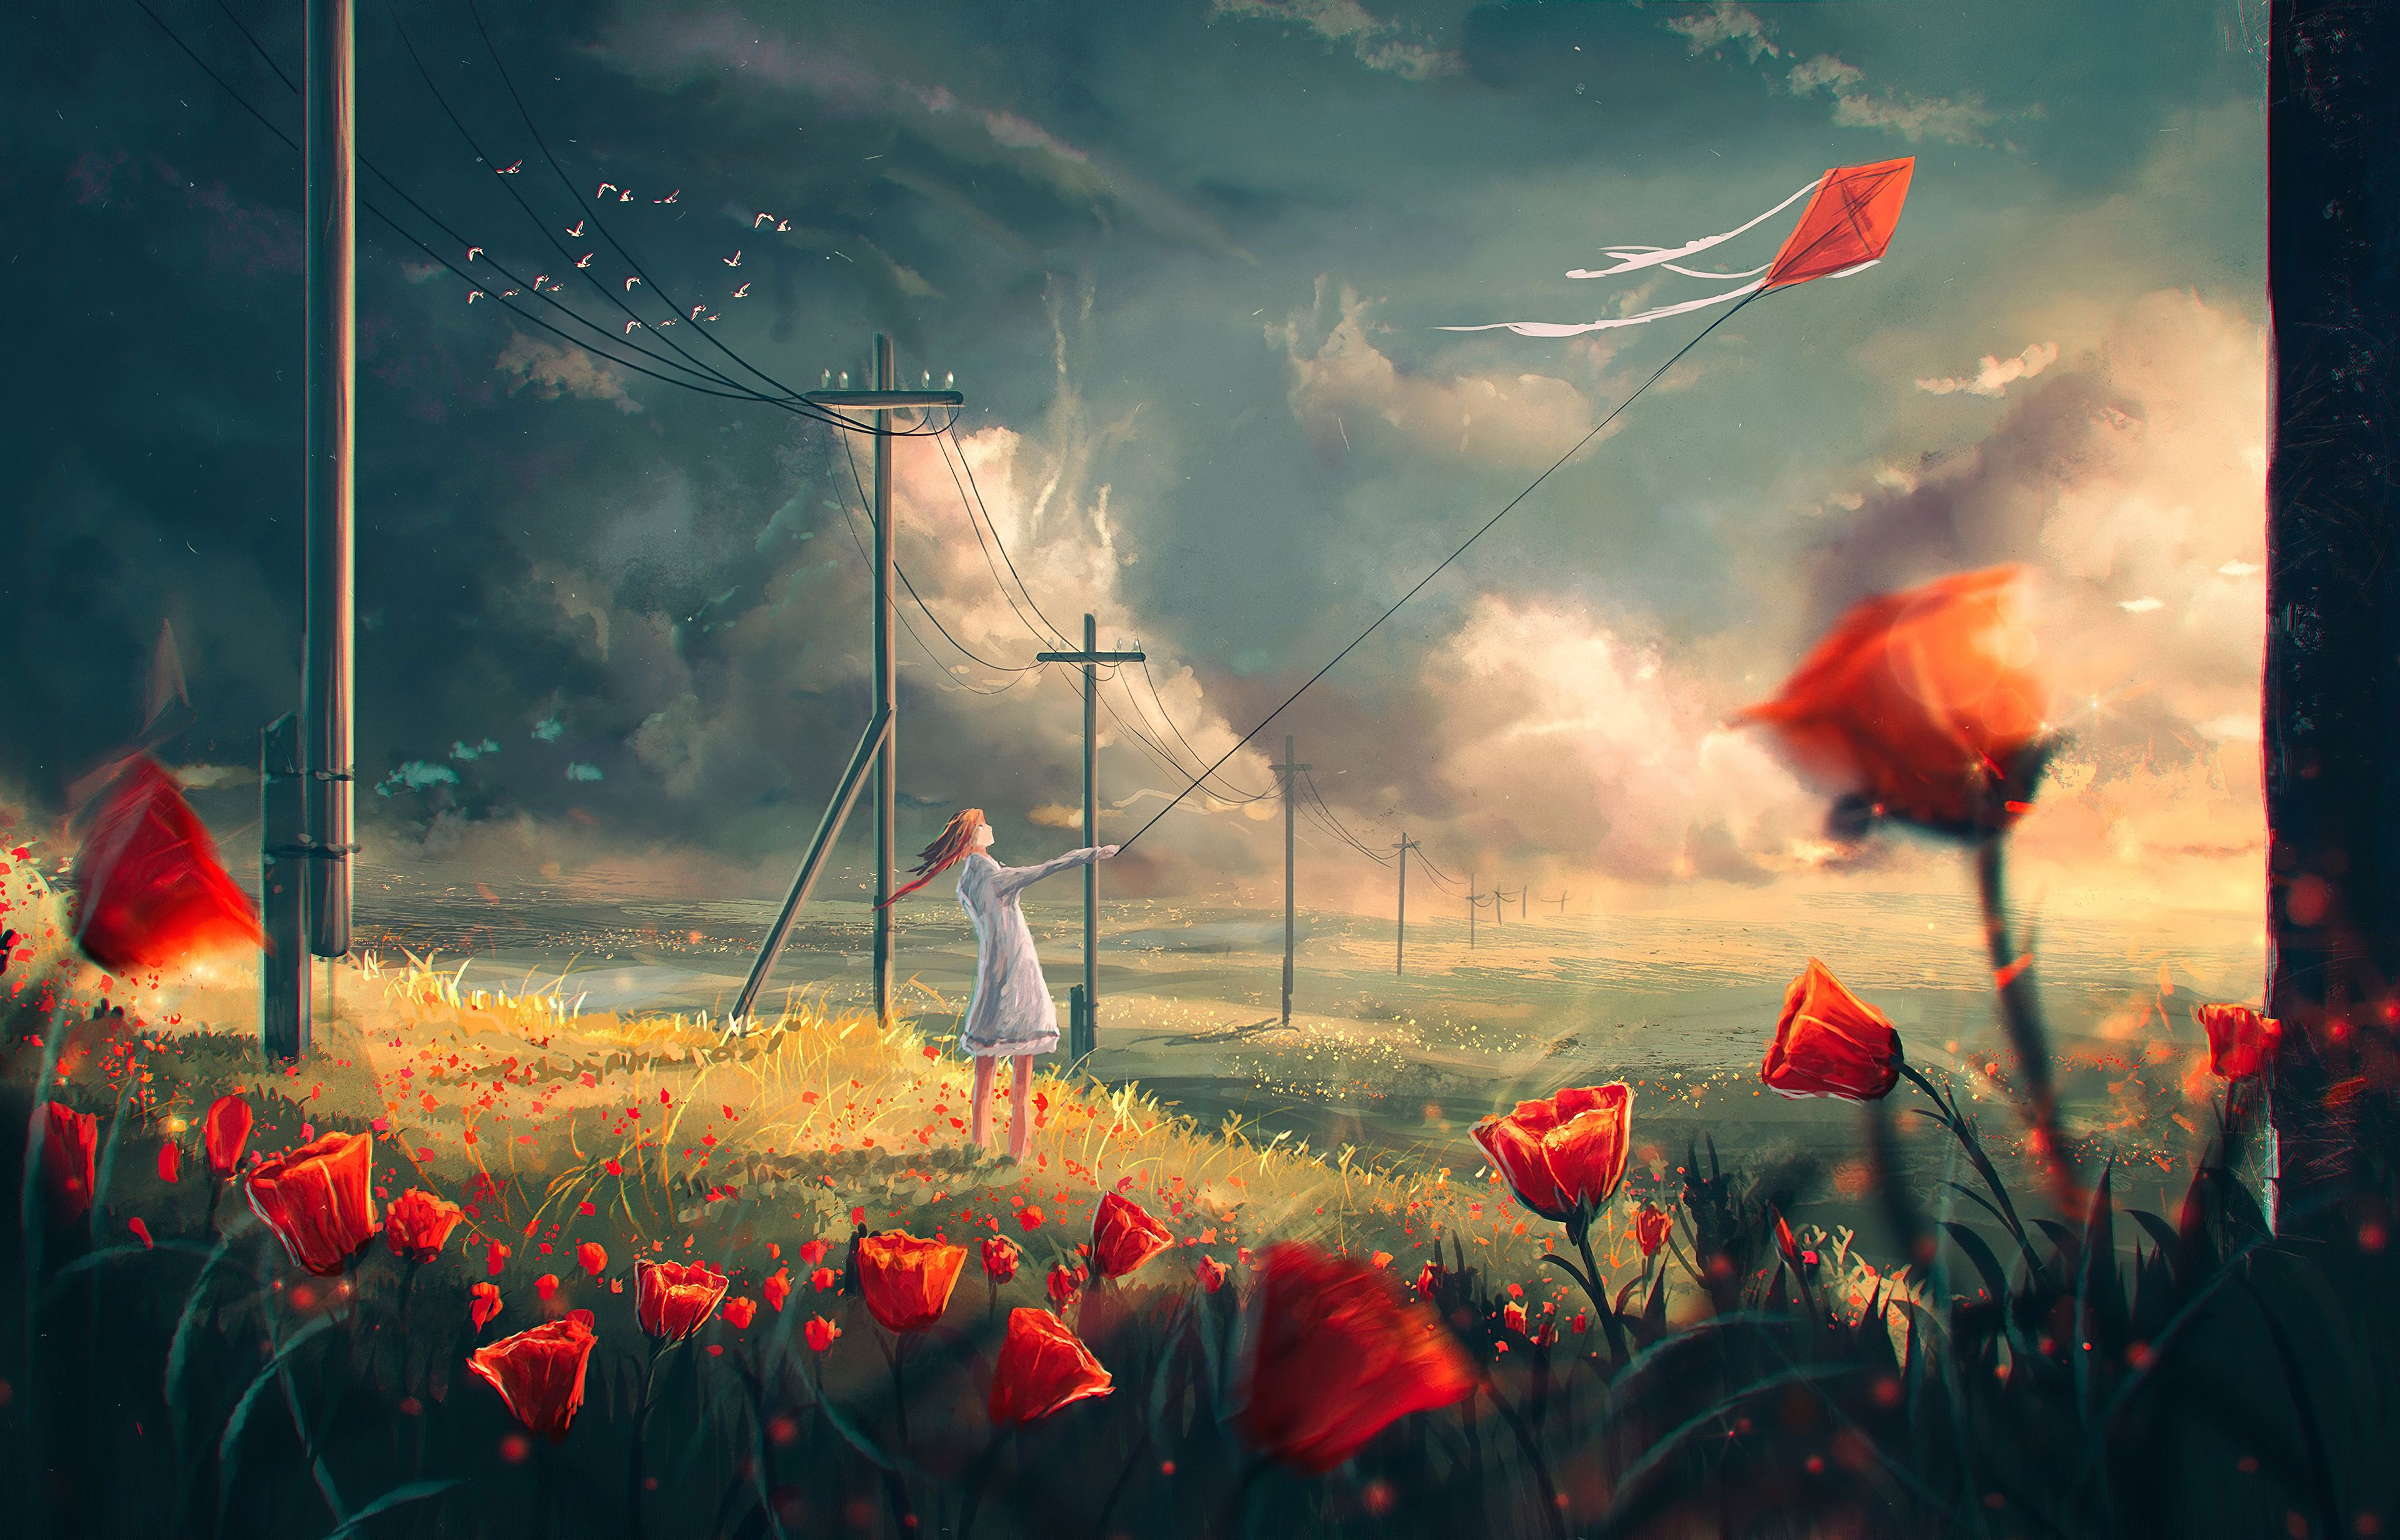 Pin On Anime Wallpapers 4k Red flower field anime holding kite